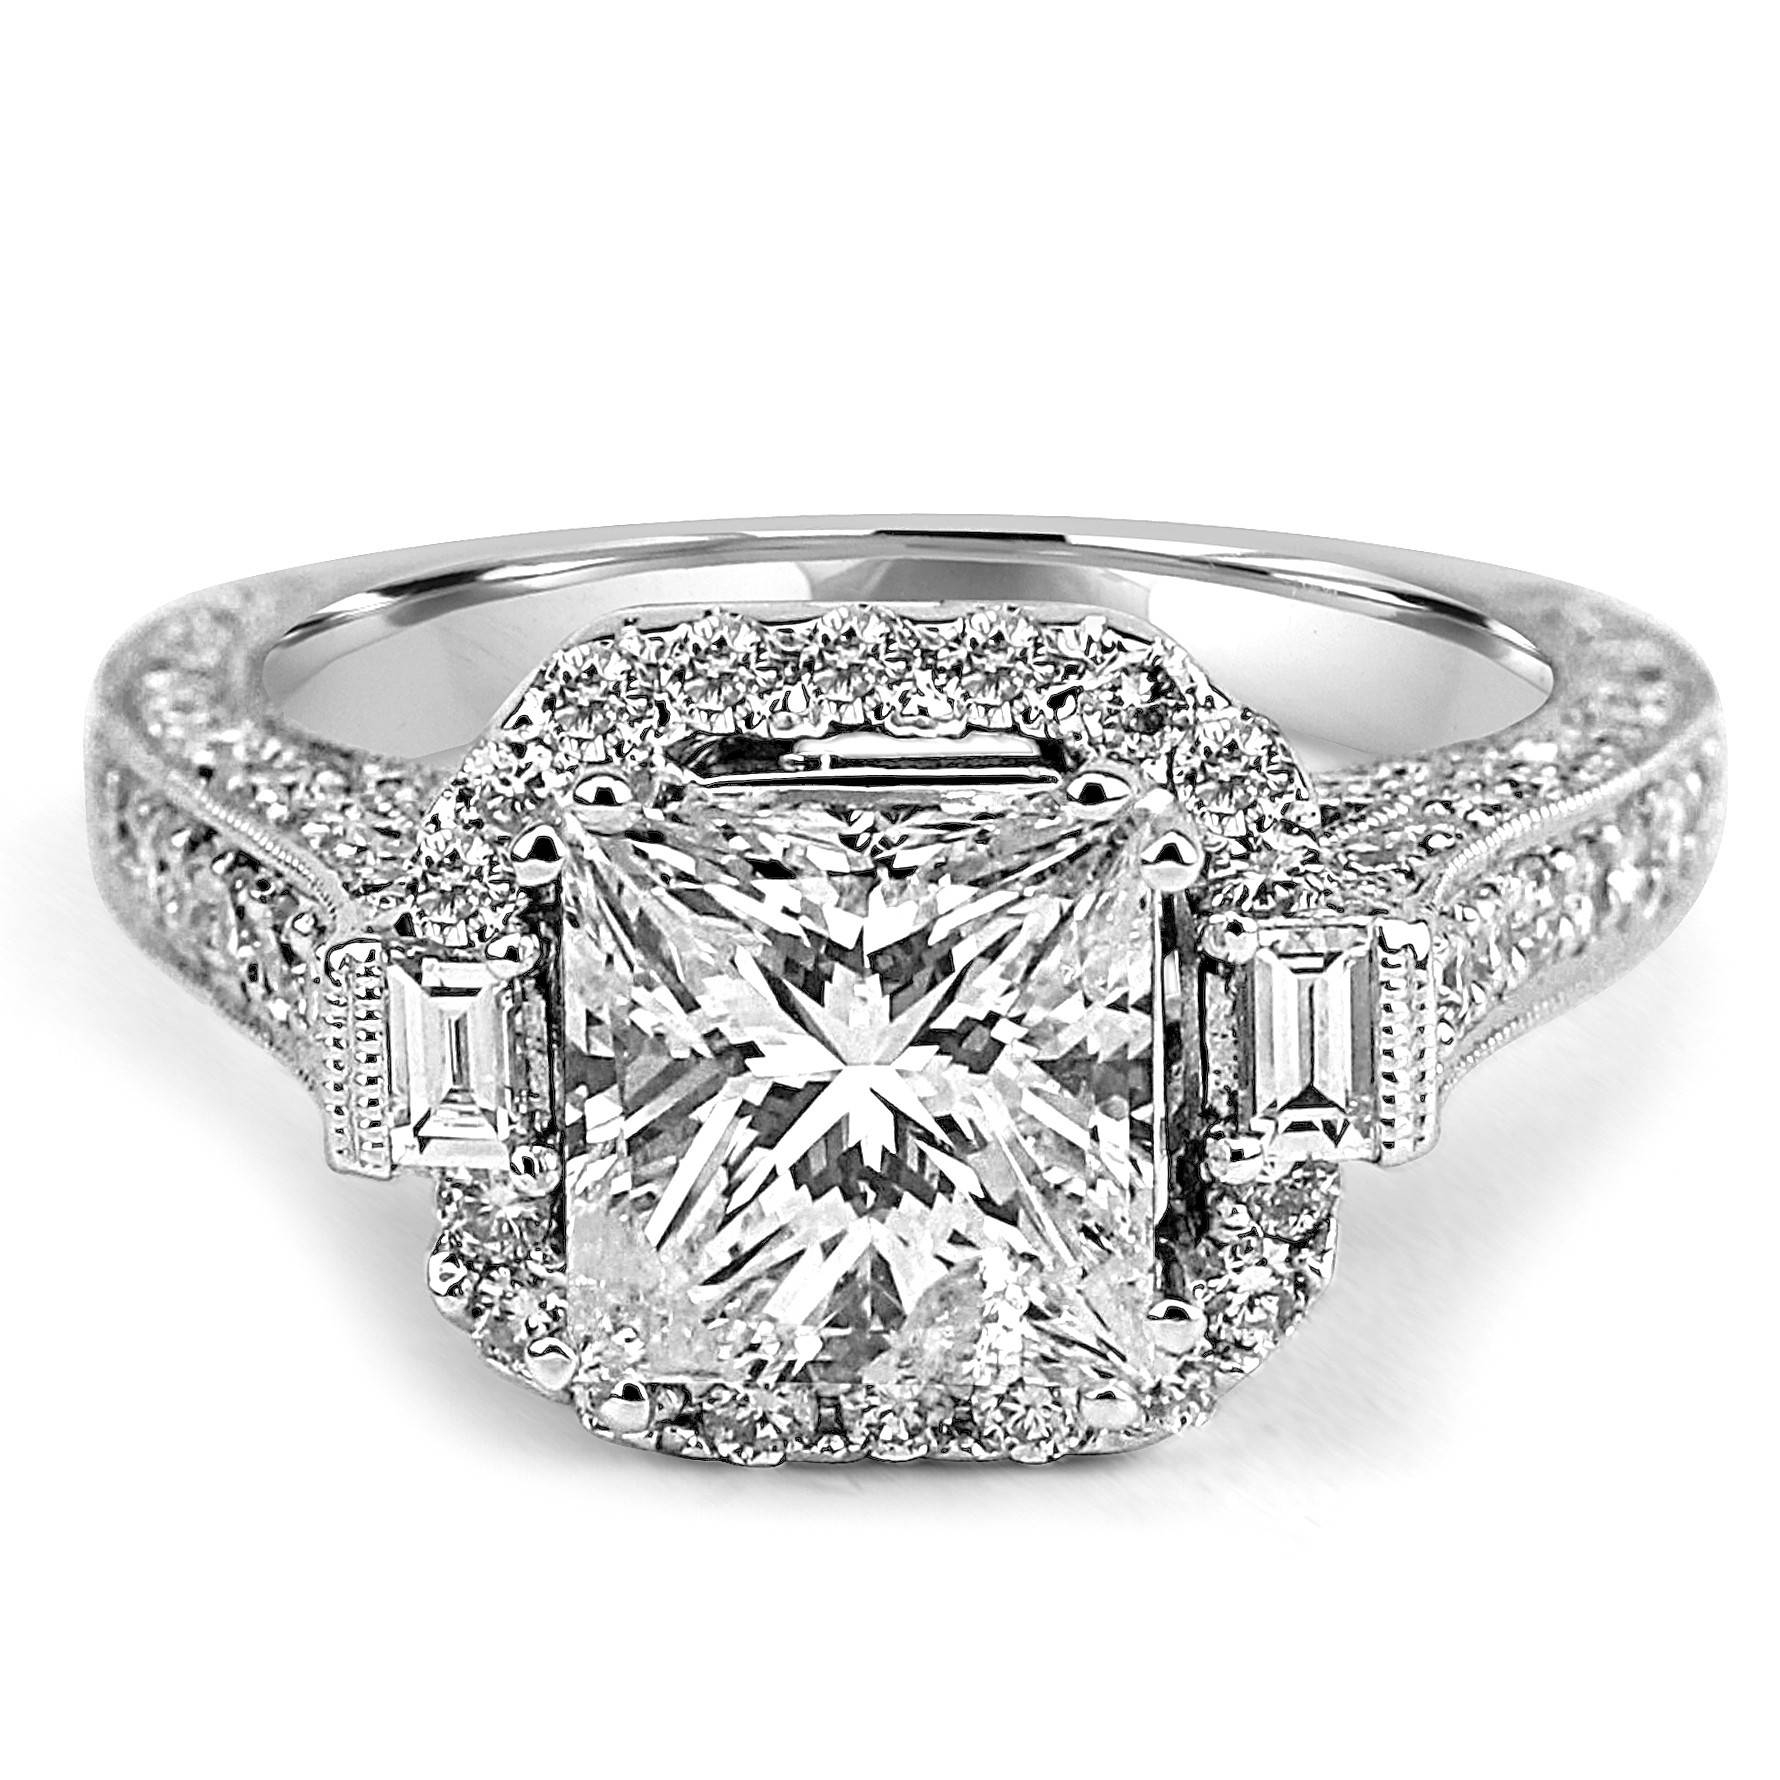 Jean Pierre Jewelers In Halo Diamond Wedding Rings (View 8 of 15)